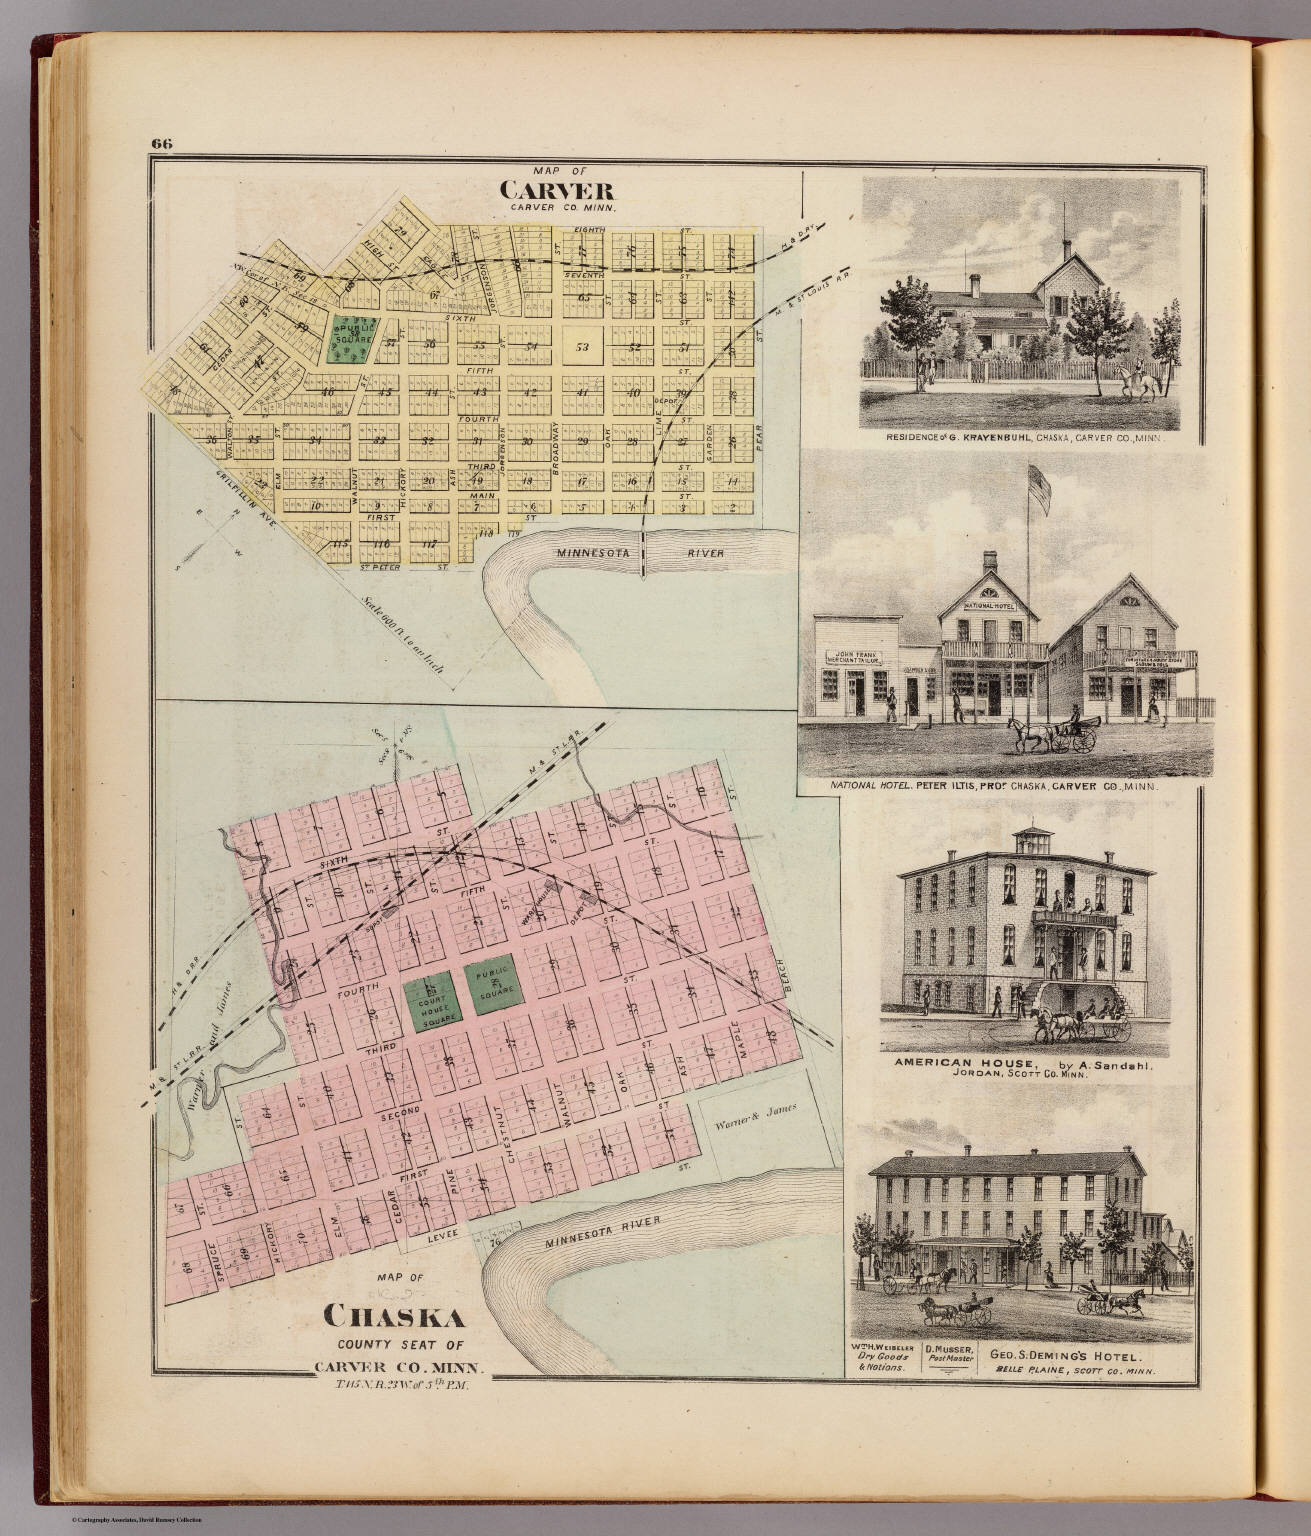 Map of Chaska and Map of Carver, Carver Co., Minn., with 4 views.